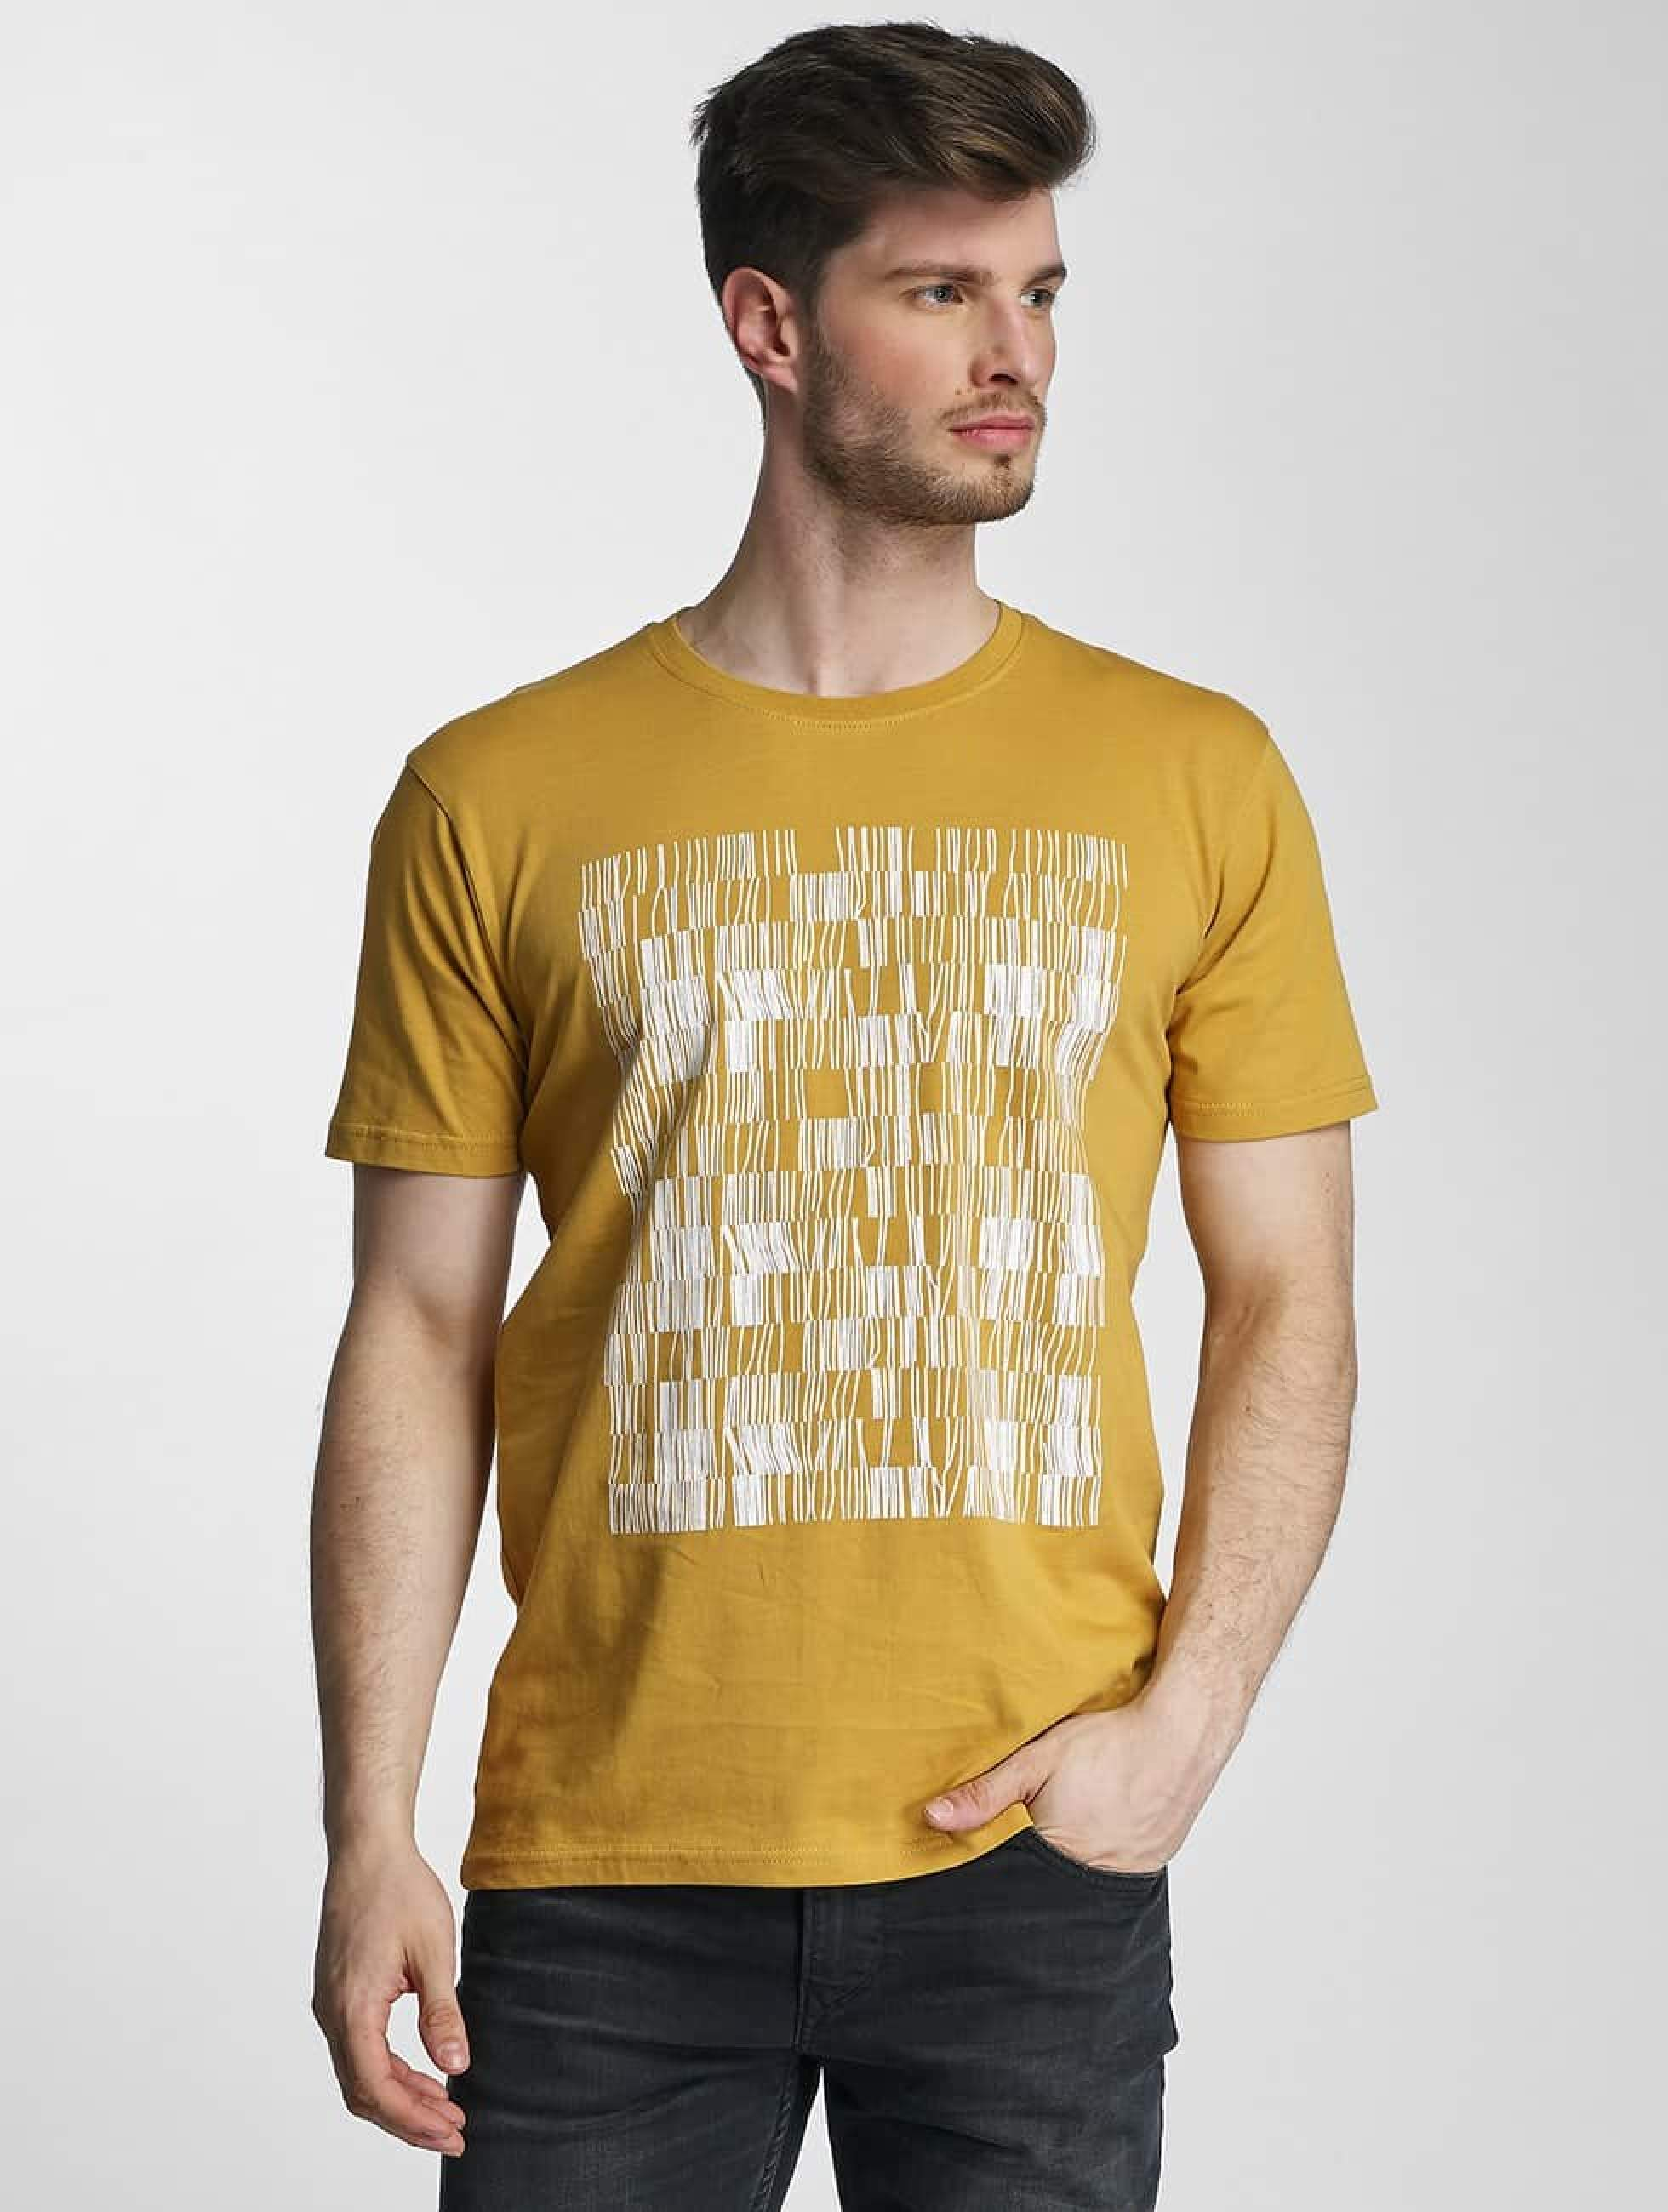 Cyprime / T-Shirt Holmium in yellow S